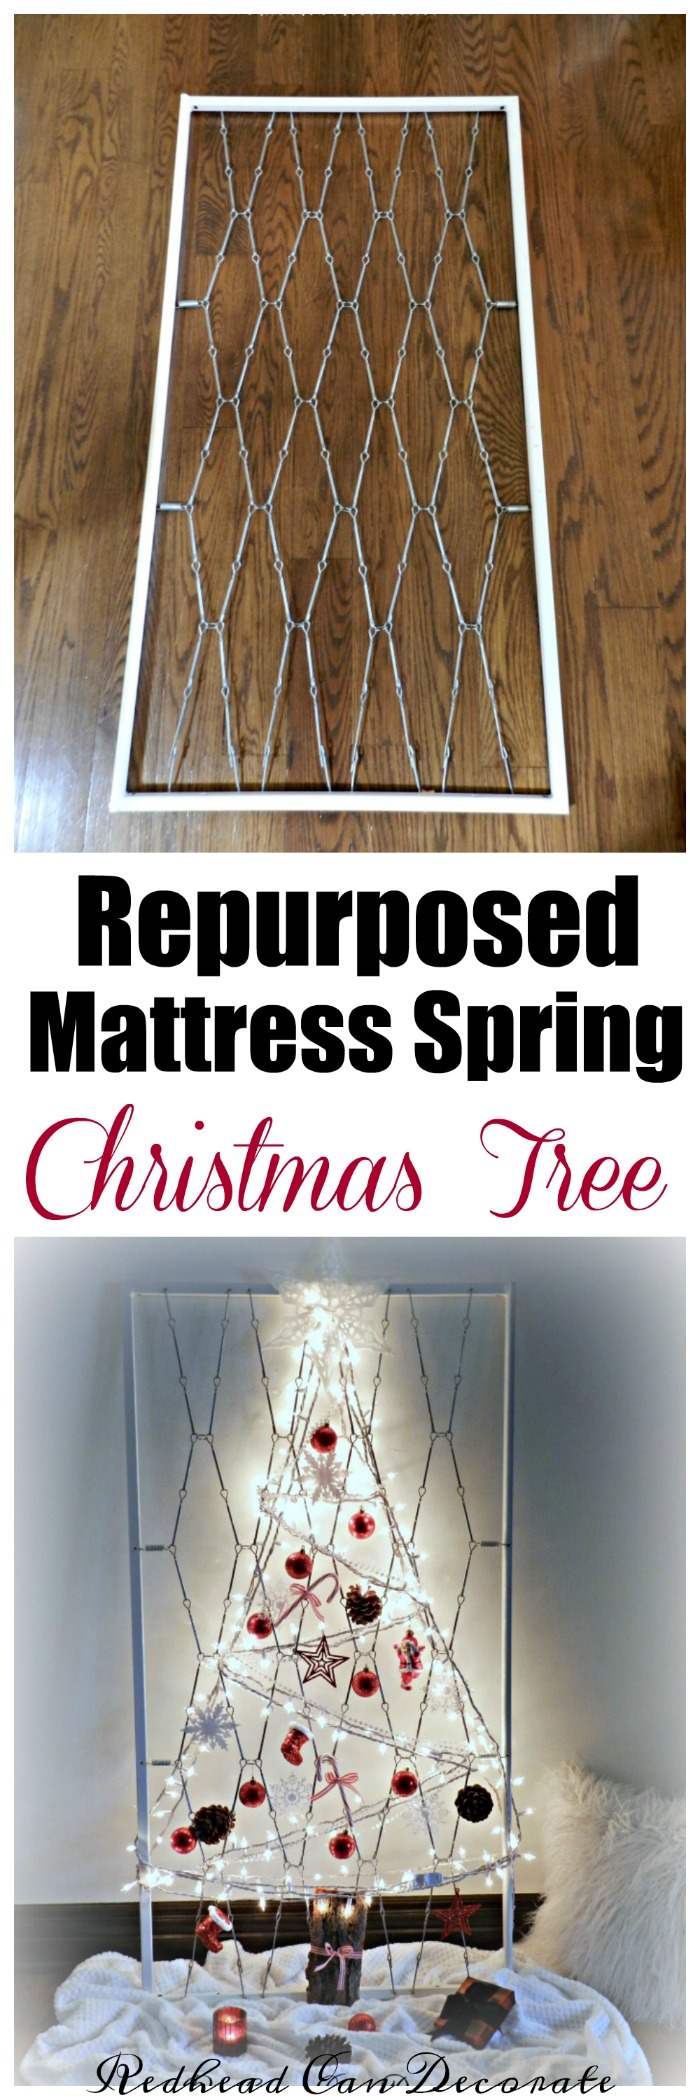 repurposed-crib-mattress-spring-christmas-tree